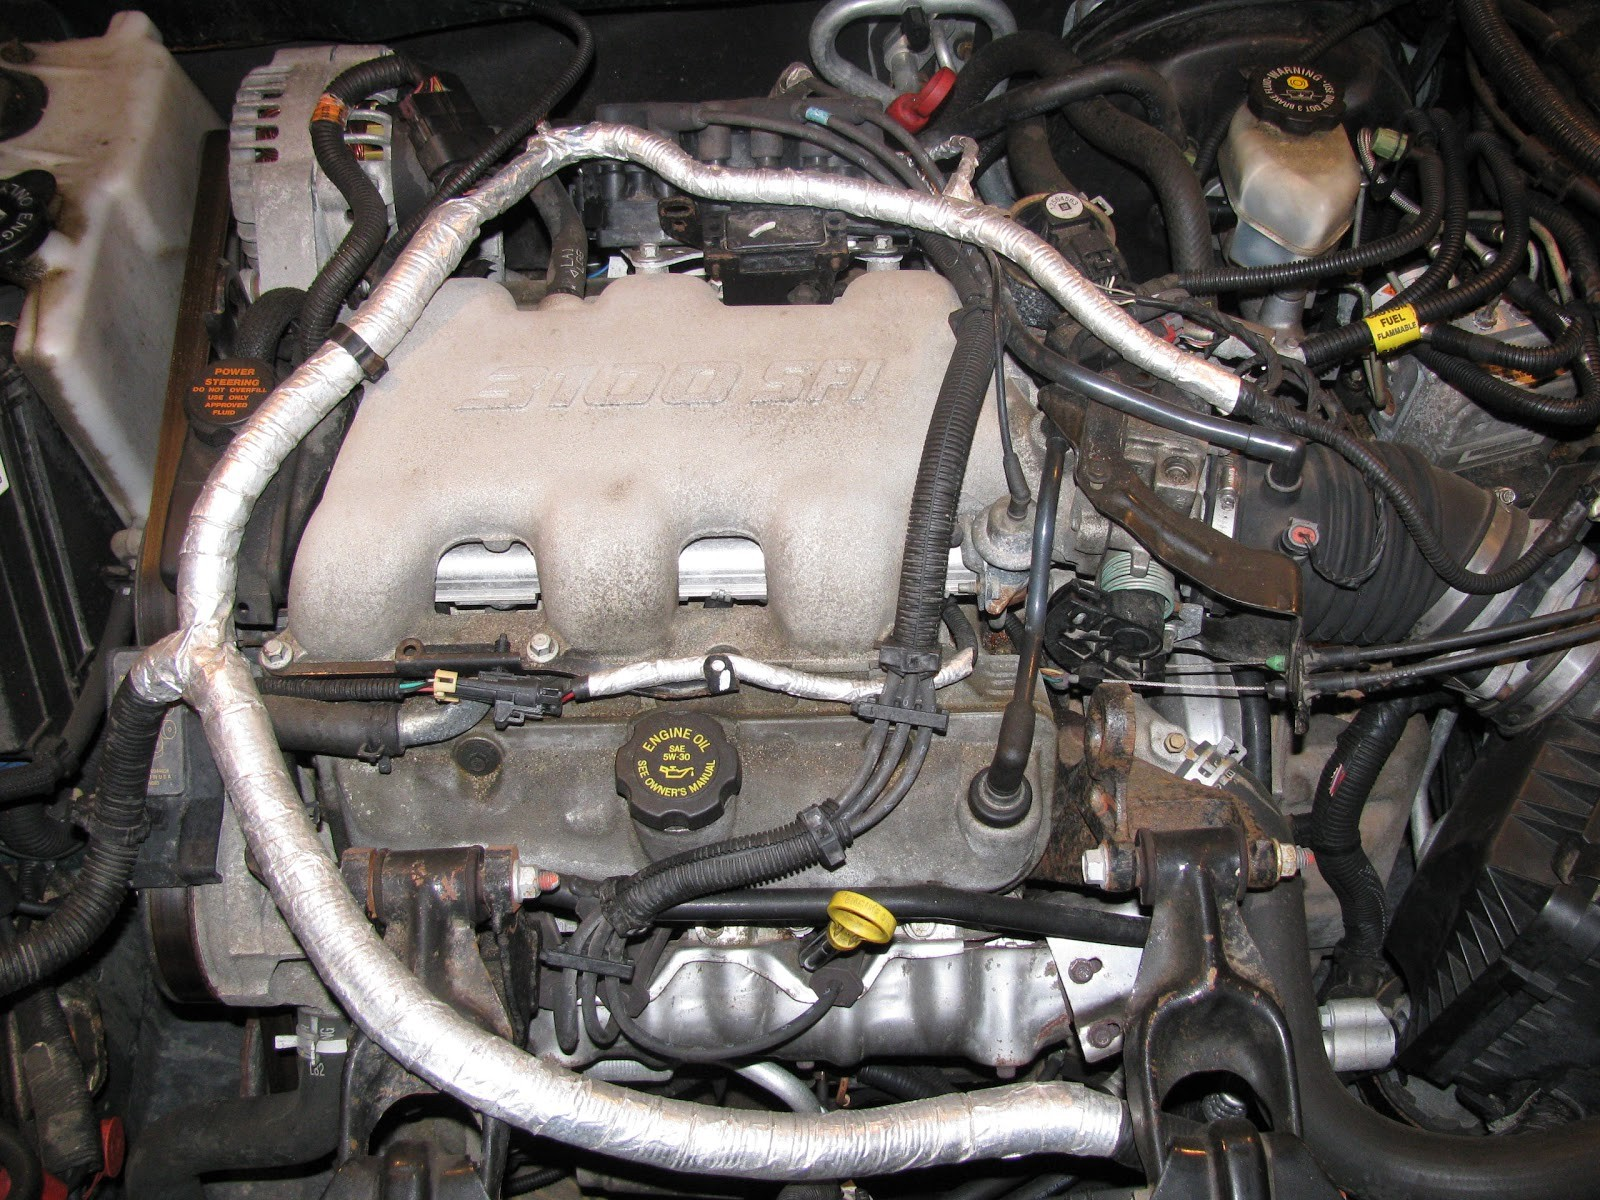 2000 Buick Century Engine Diagram the original Mechanic 3 1l Engine Gm  Replacing Intake Manifold Of